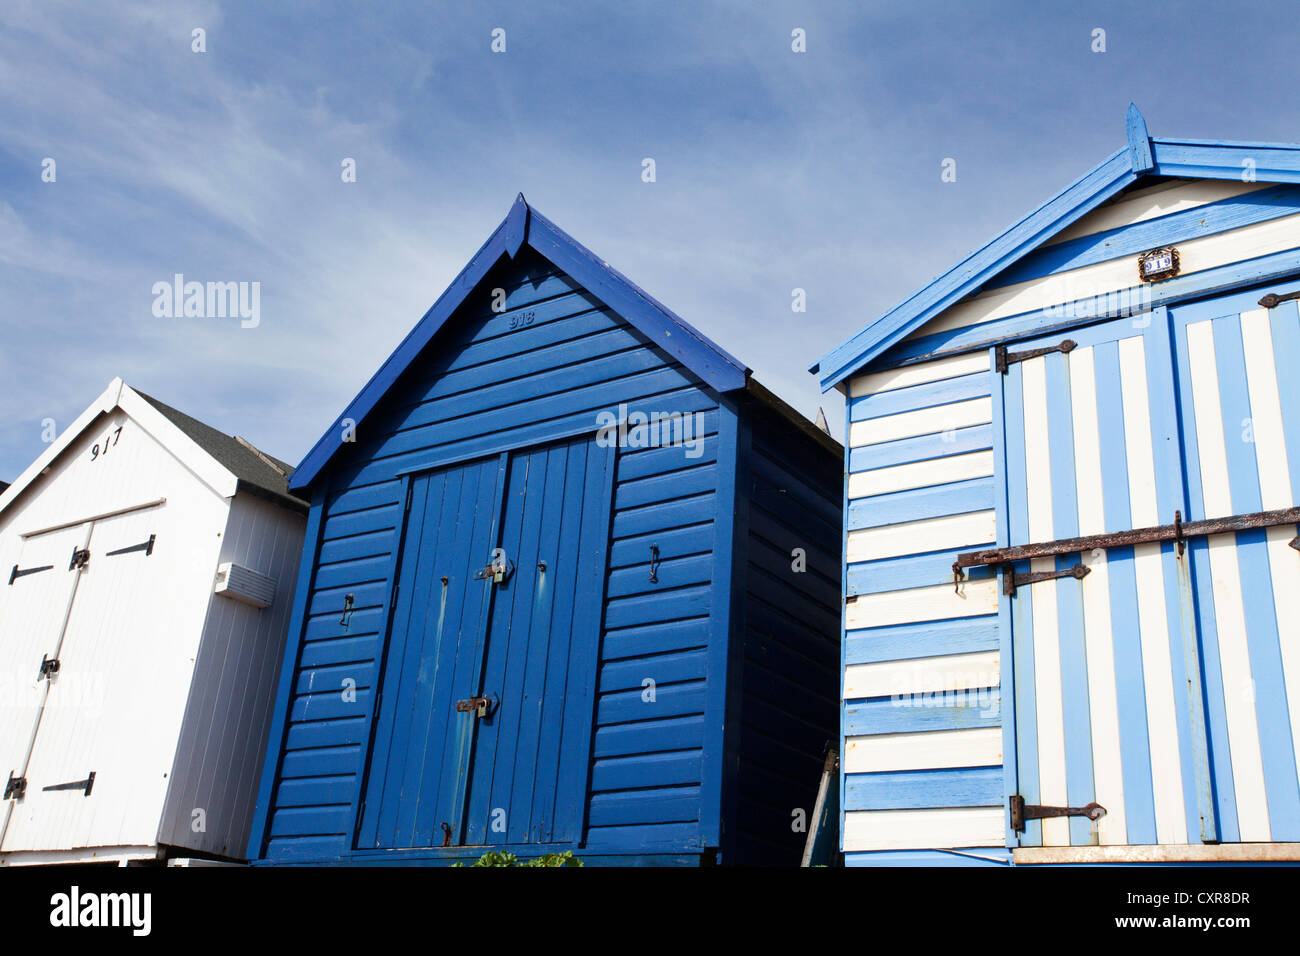 Blue and White Beach Huts at Felixstowe Suffolk England - Stock Image